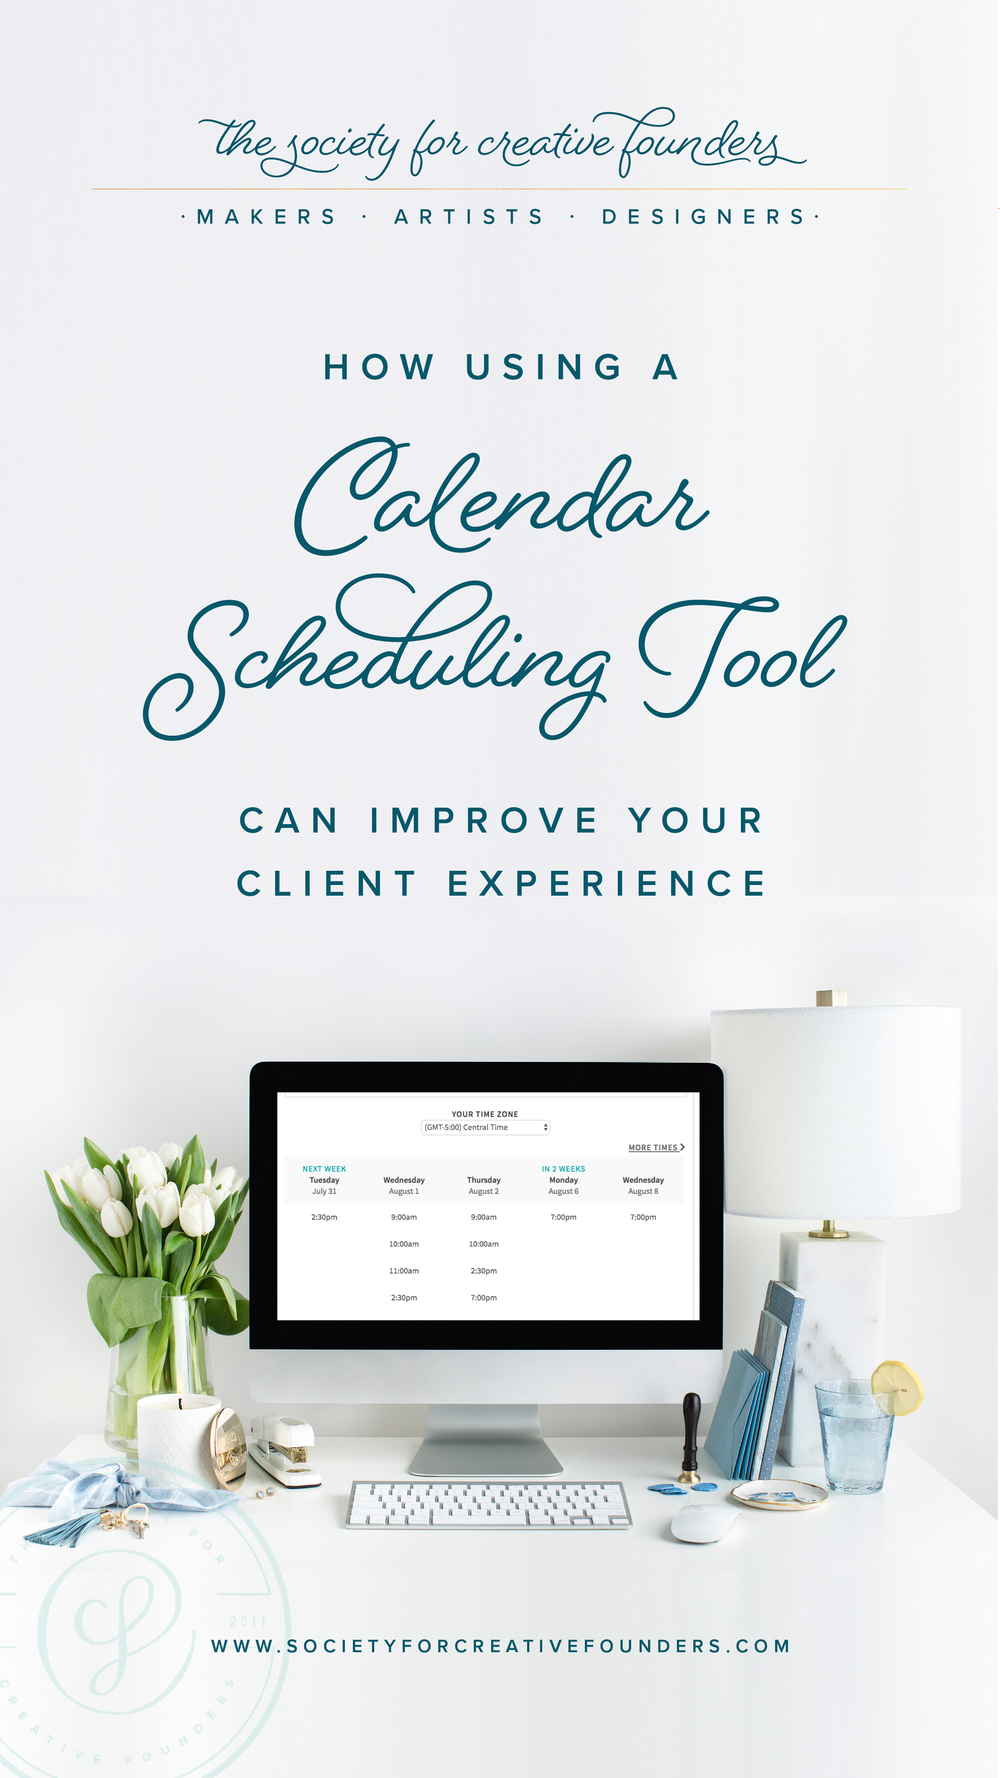 Acuity as a Calendar Scheduling Tool to Improve Productivity and Client Experience